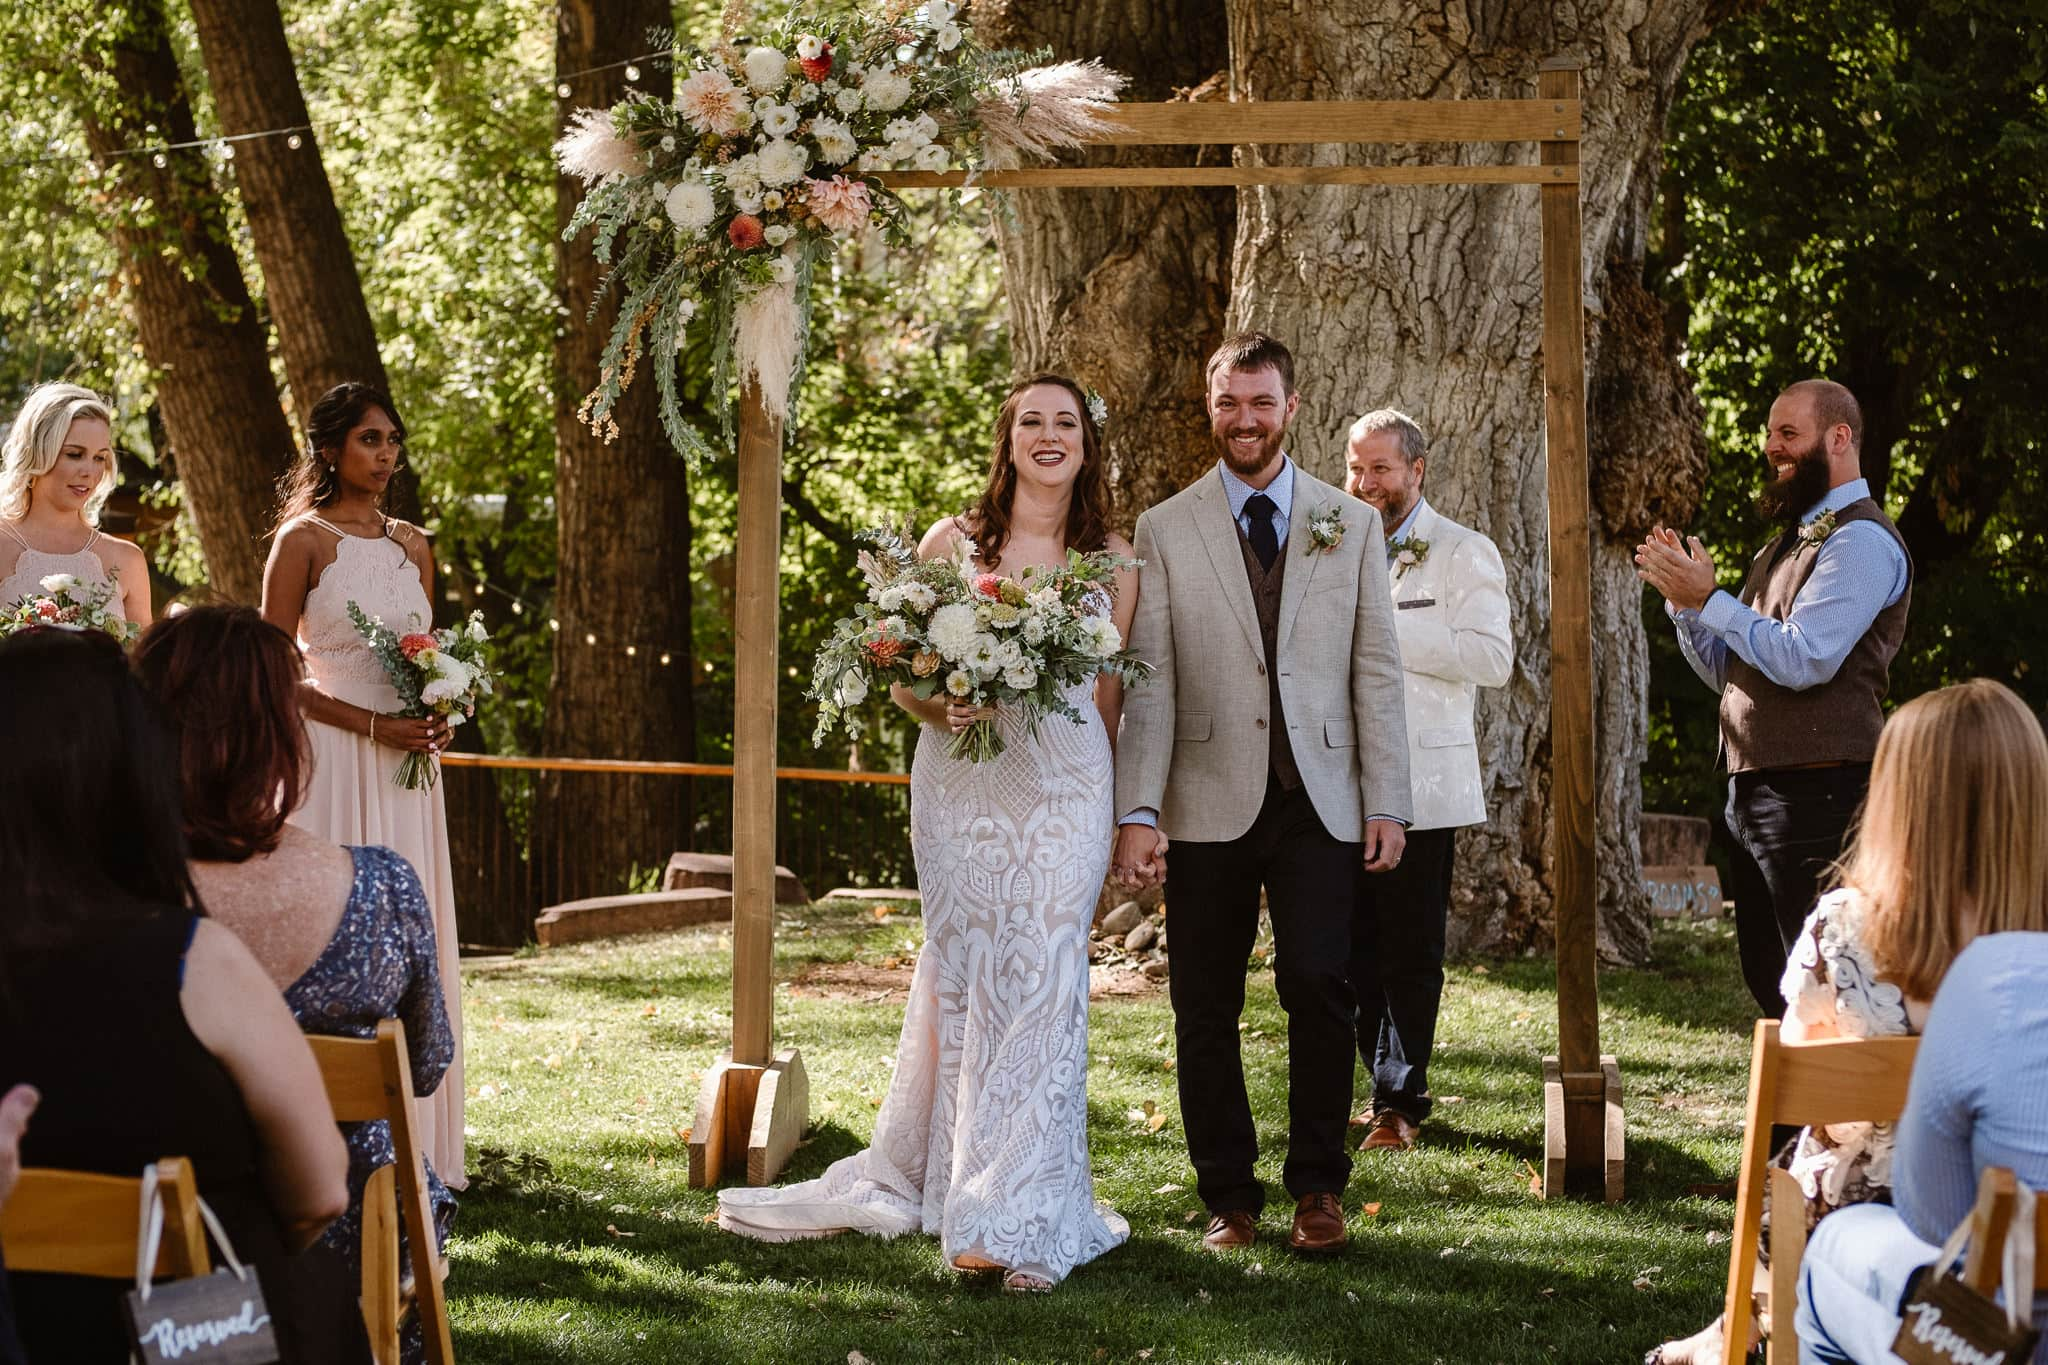 Lyons Farmette wedding photographer, Colorado intimate wedding photographer, wedding ceremony, wedding photos